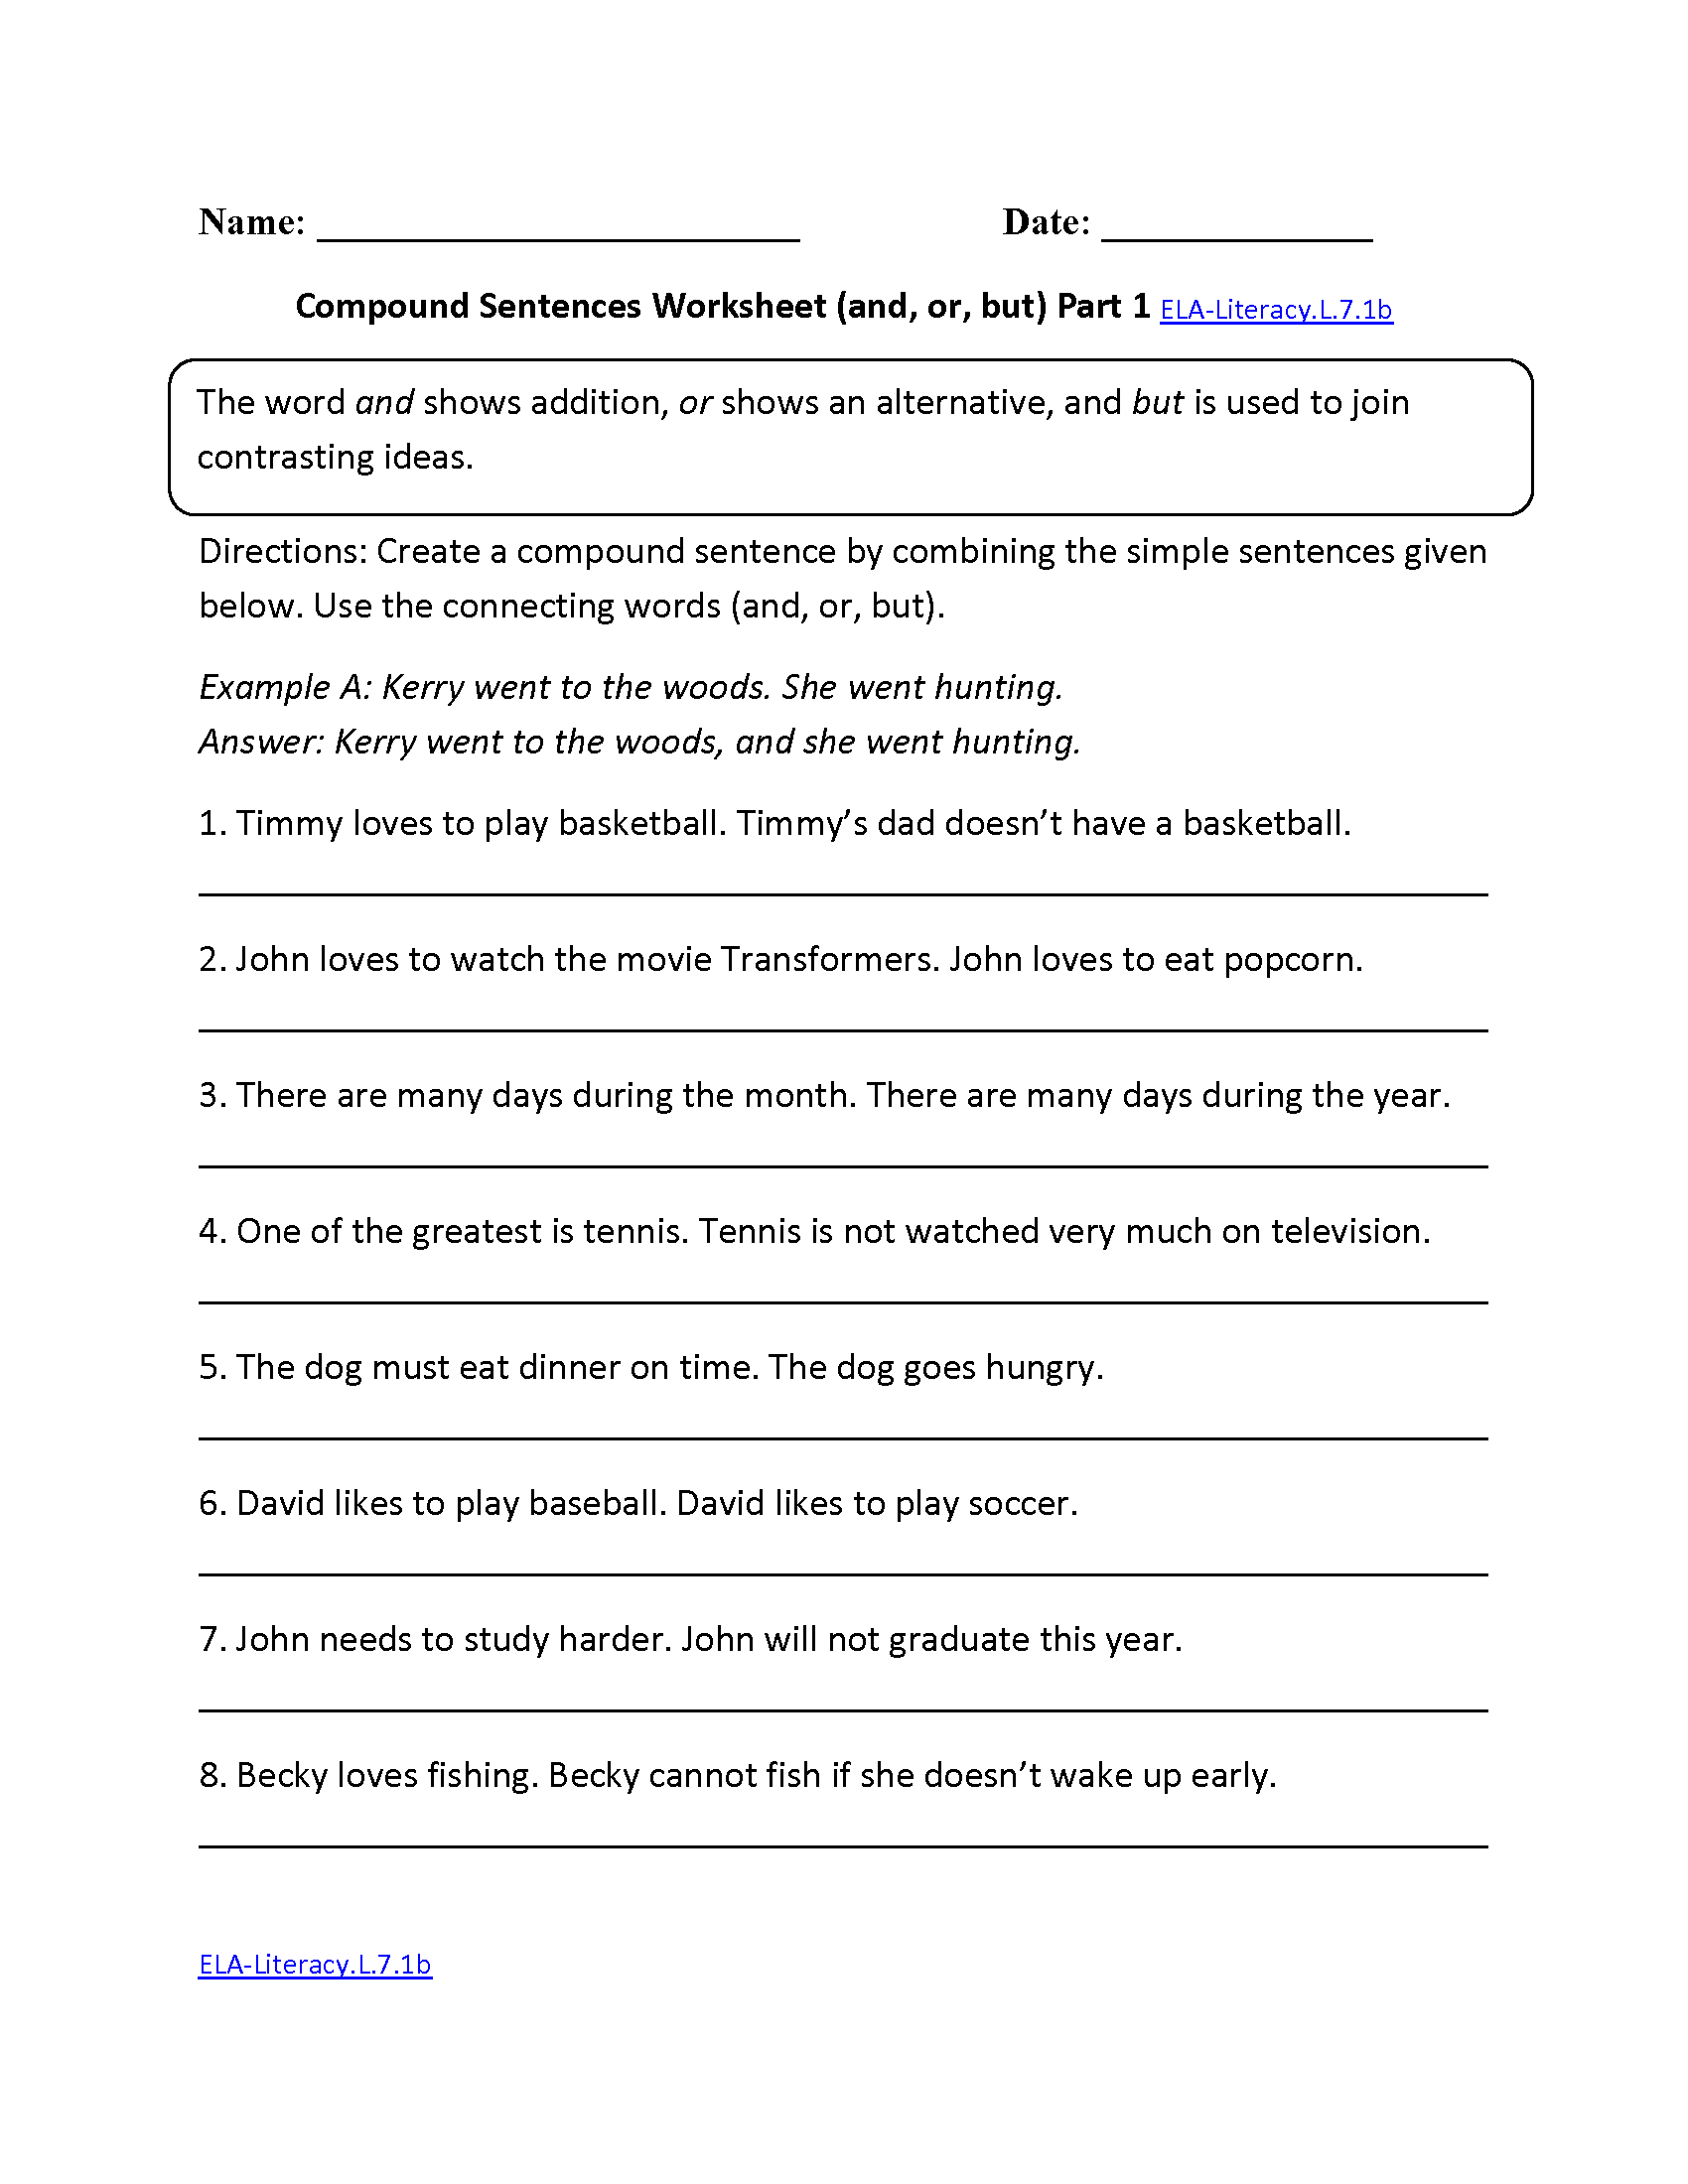 Worksheet 7th Grade Language Arts Worksheets 7th grade common core language worksheets compound sentences worksheet ela literacy l 7 1b worksheet